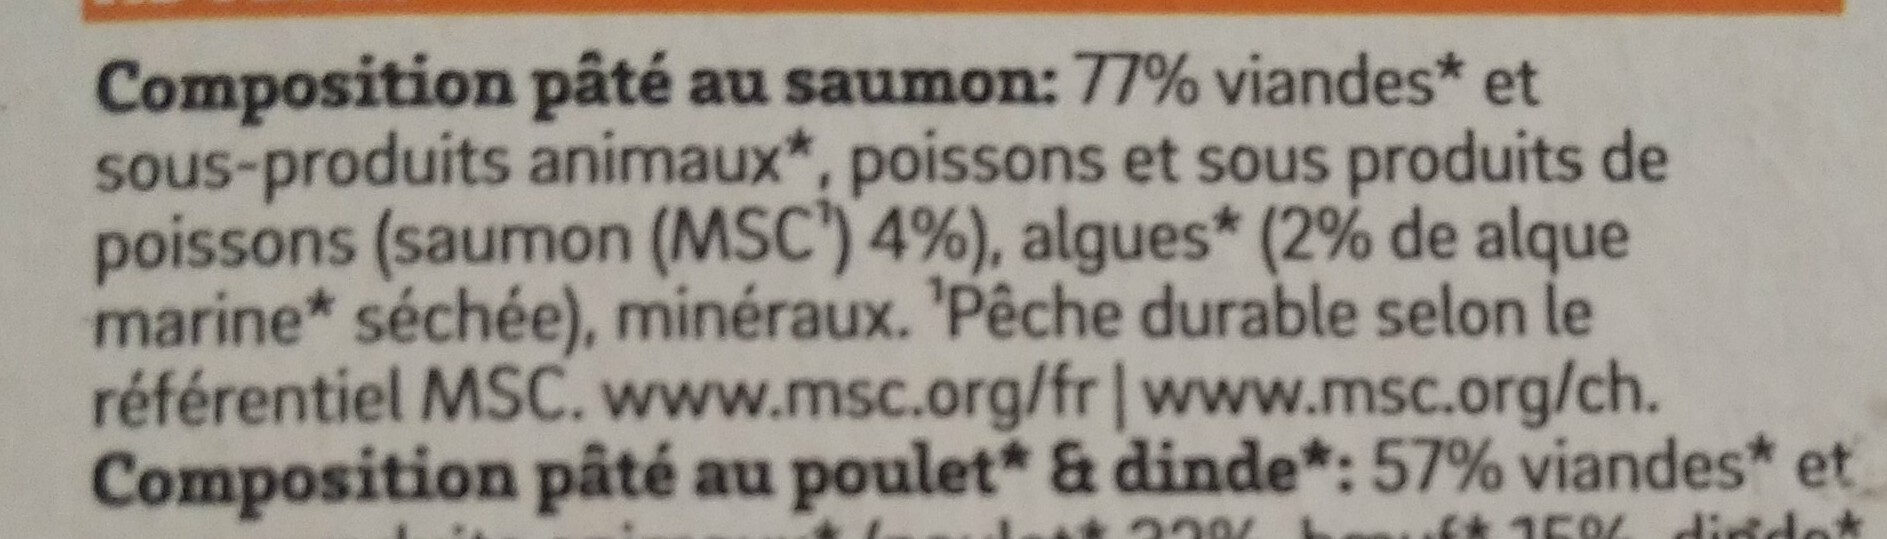 Patée Saumon Chat - Ingredients - fr